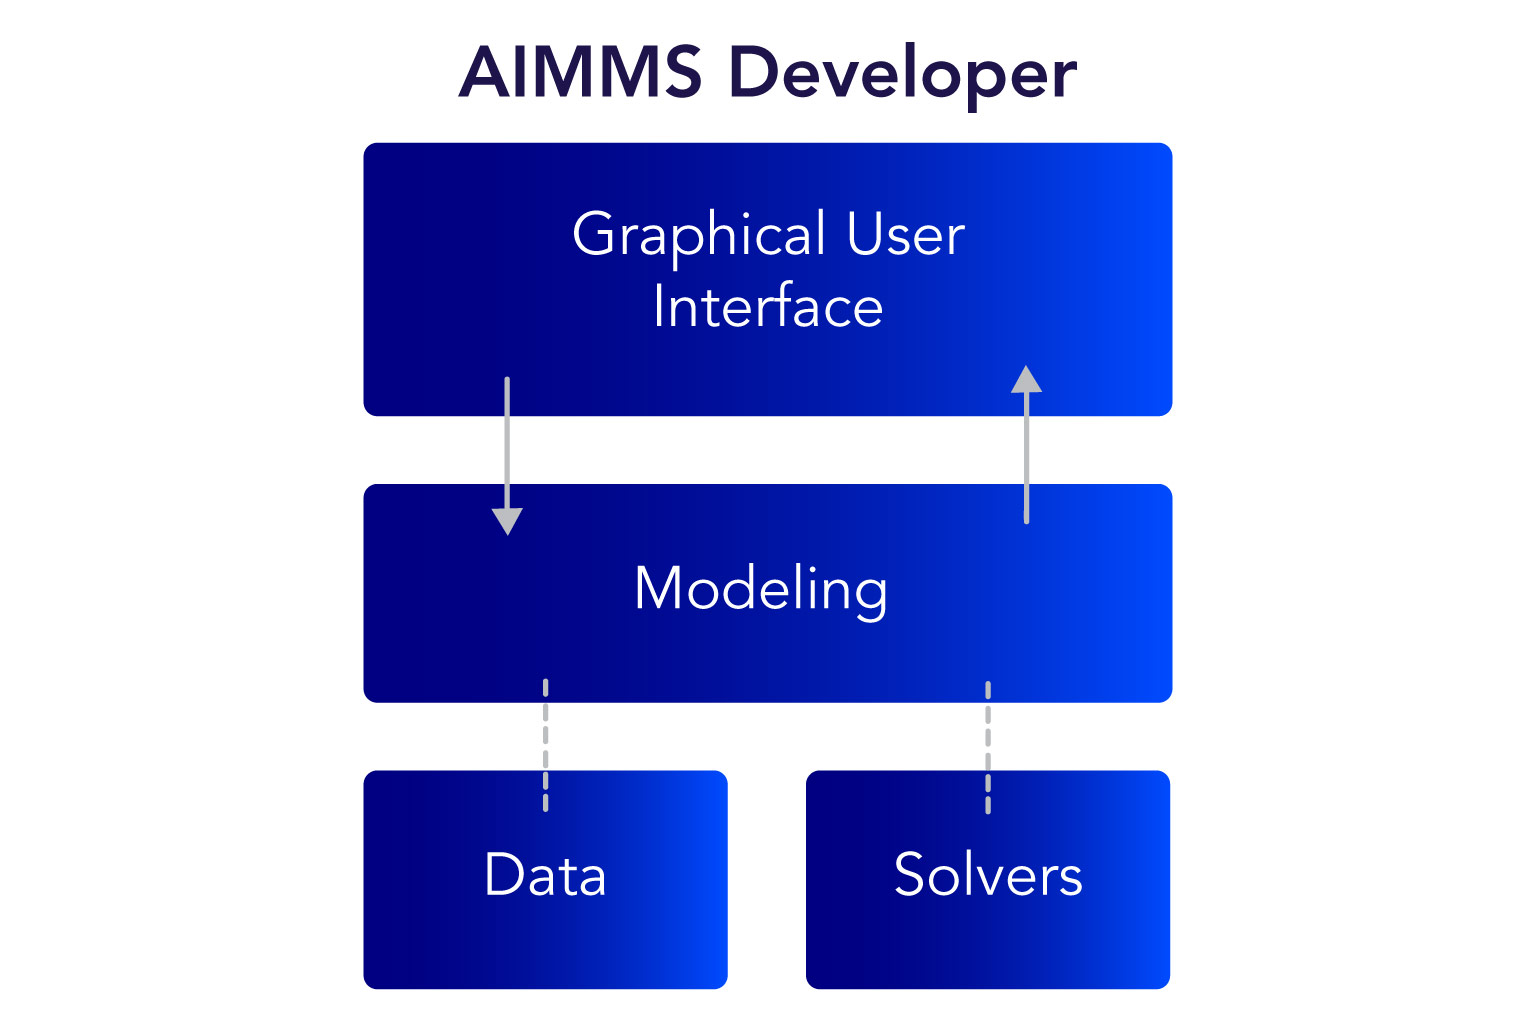 ../_images/AIMMS-Developer-graphic1-1.jpg